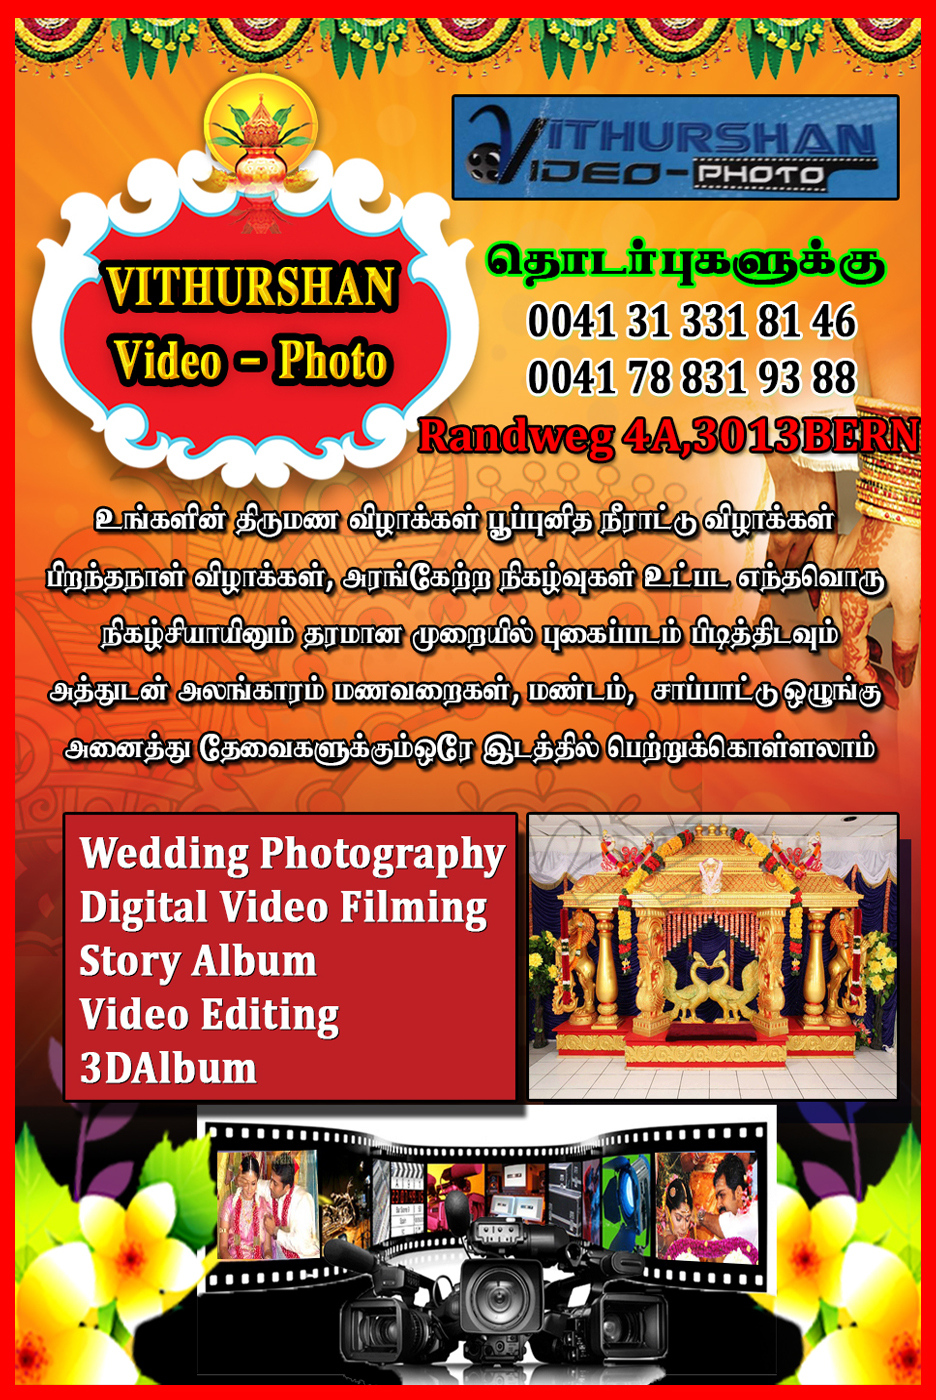 vithurshan-video